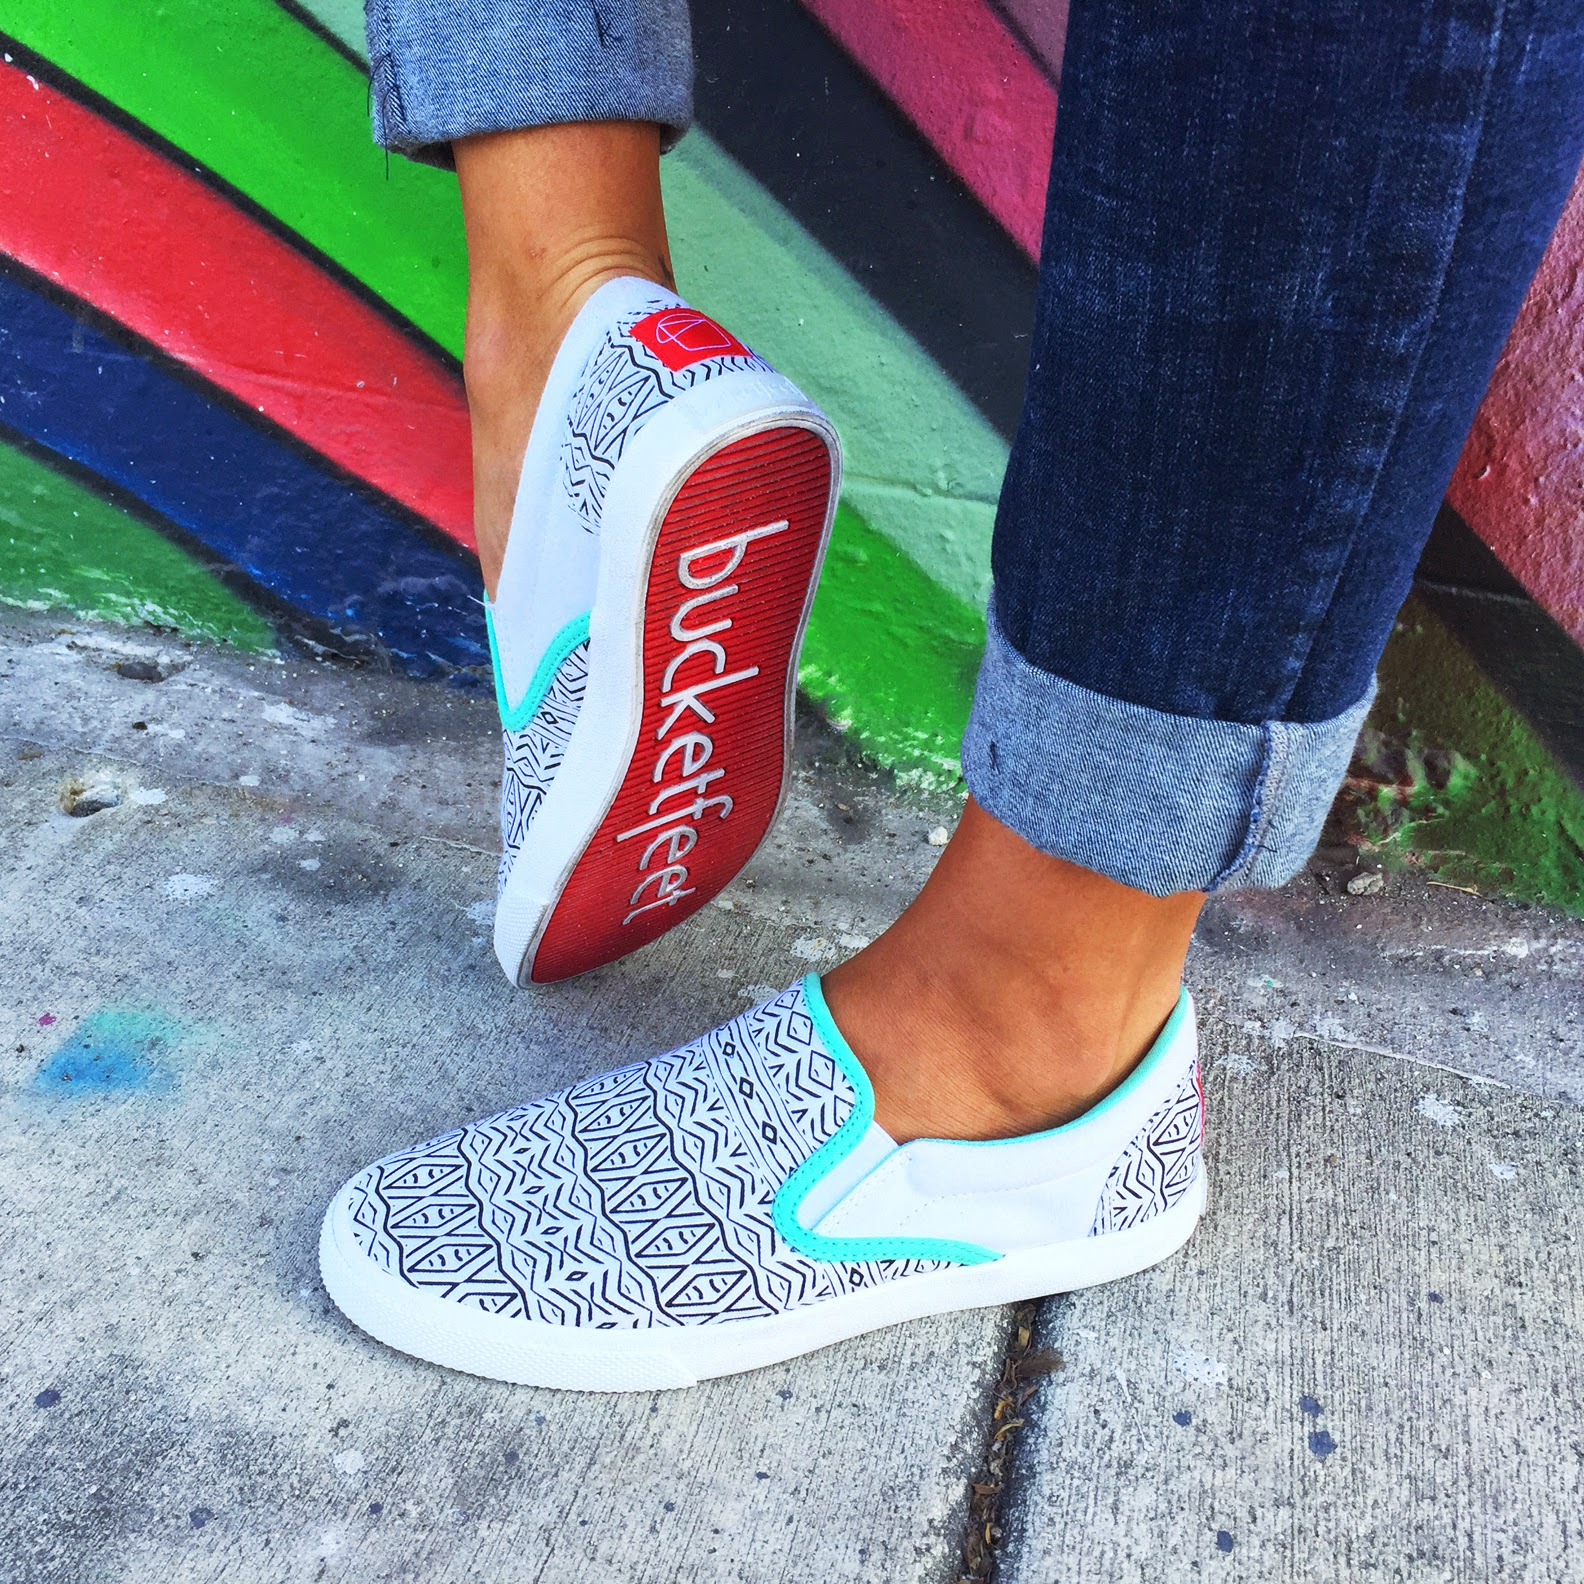 http://www1.bloomingdales.com/shop/product/bucketfeet-flat-slip-on-sneakers-tambourine-line-print?ID=1237458&CategoryID=16961#fn=spp%3D2%26ppp%3D96%26sp%3DNull%26rid%3DNull%26cm_kws%3Dtambourine